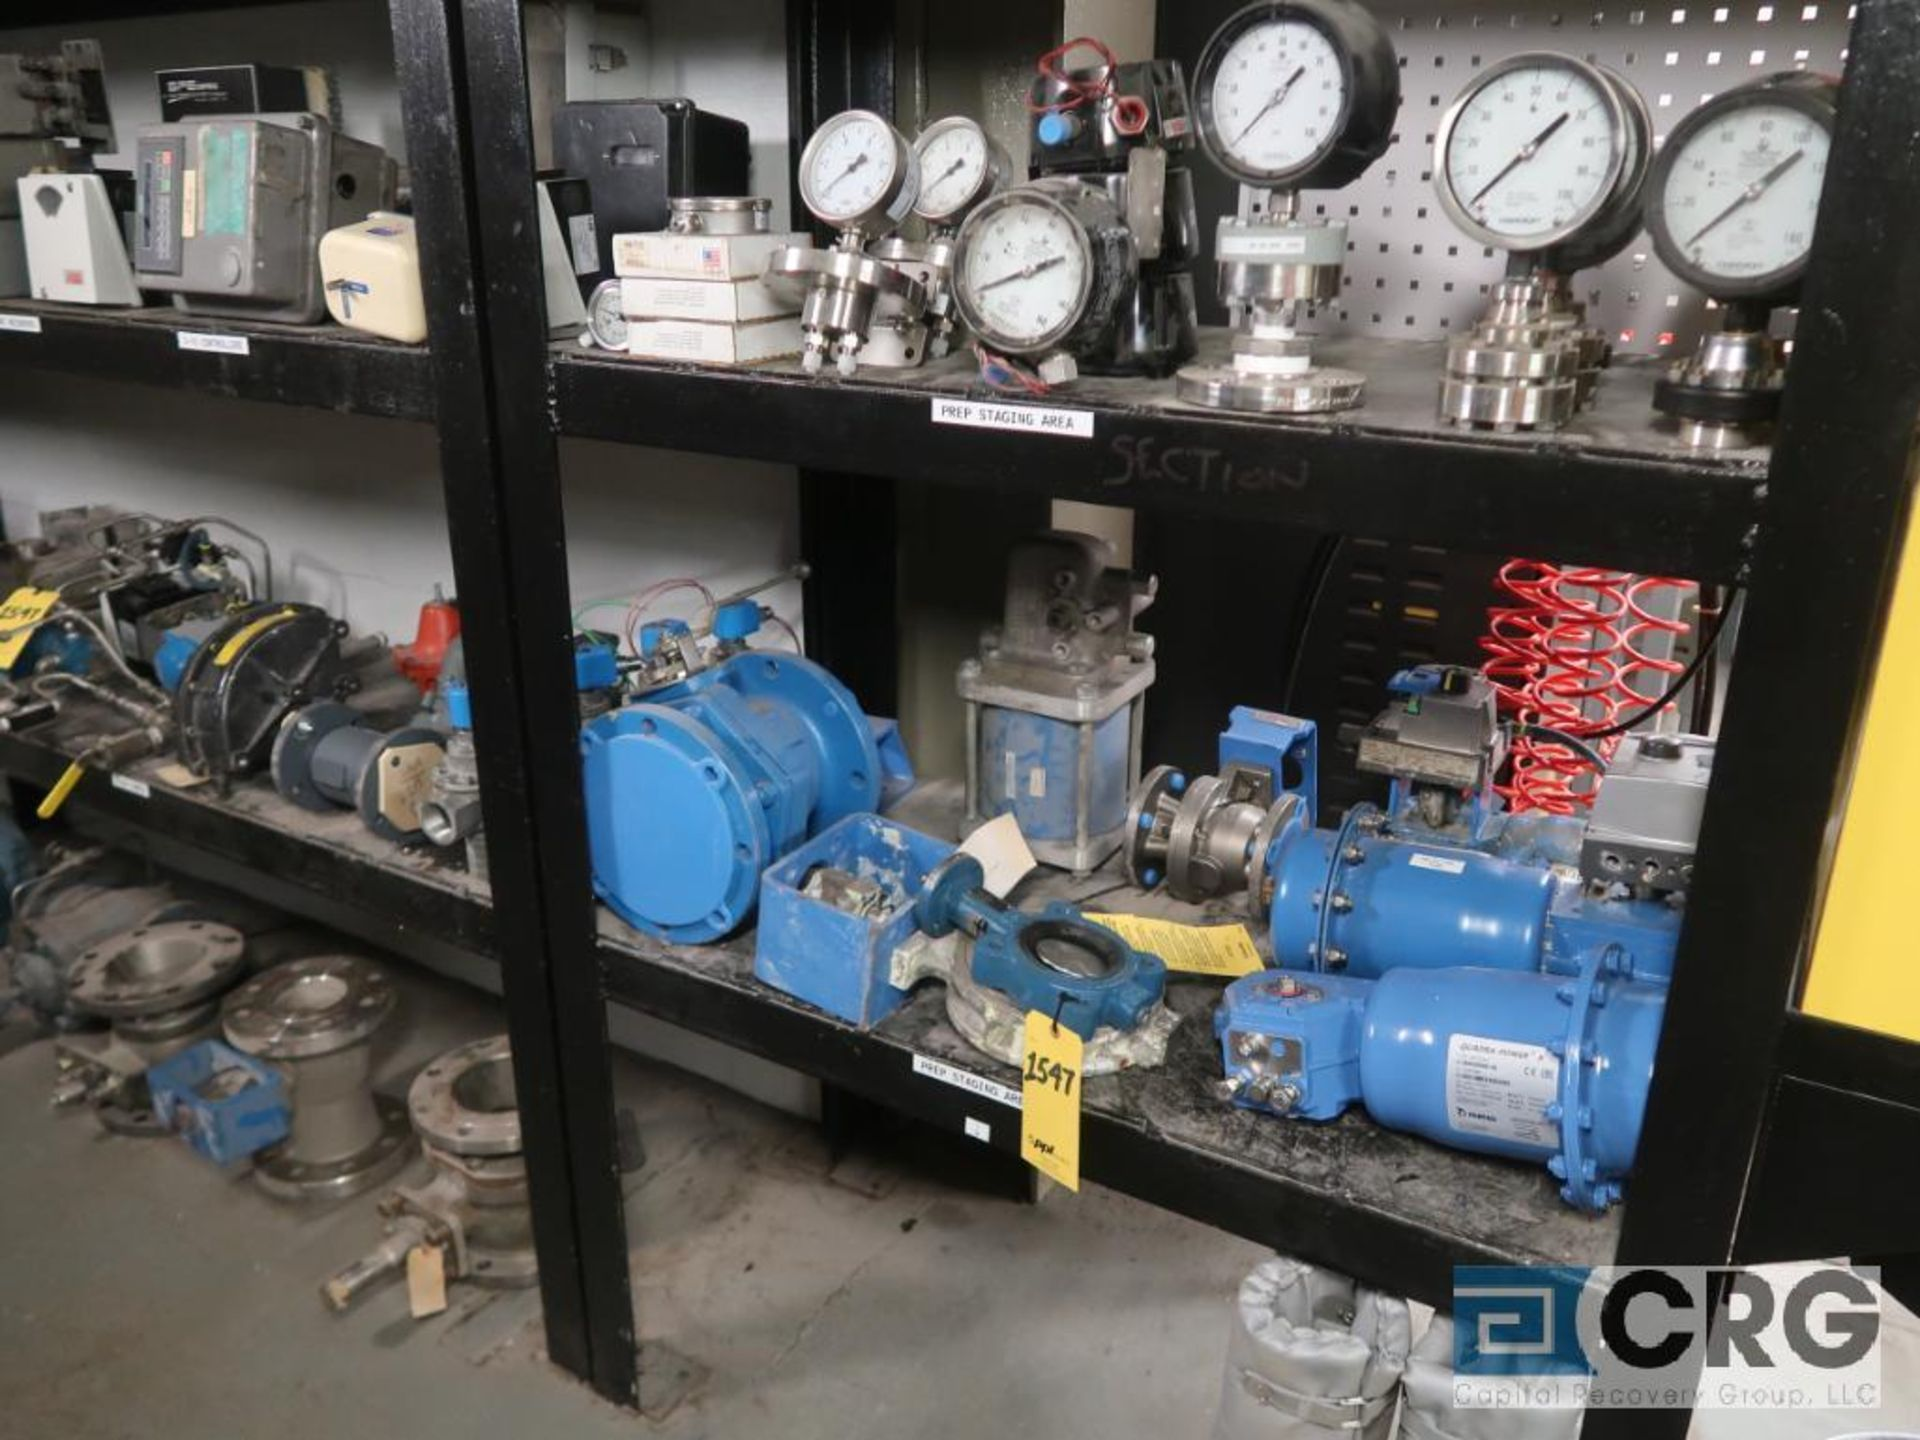 Lot of miscellaneous items including sensors, valves, calibrator, regulators, switches, - Image 4 of 5